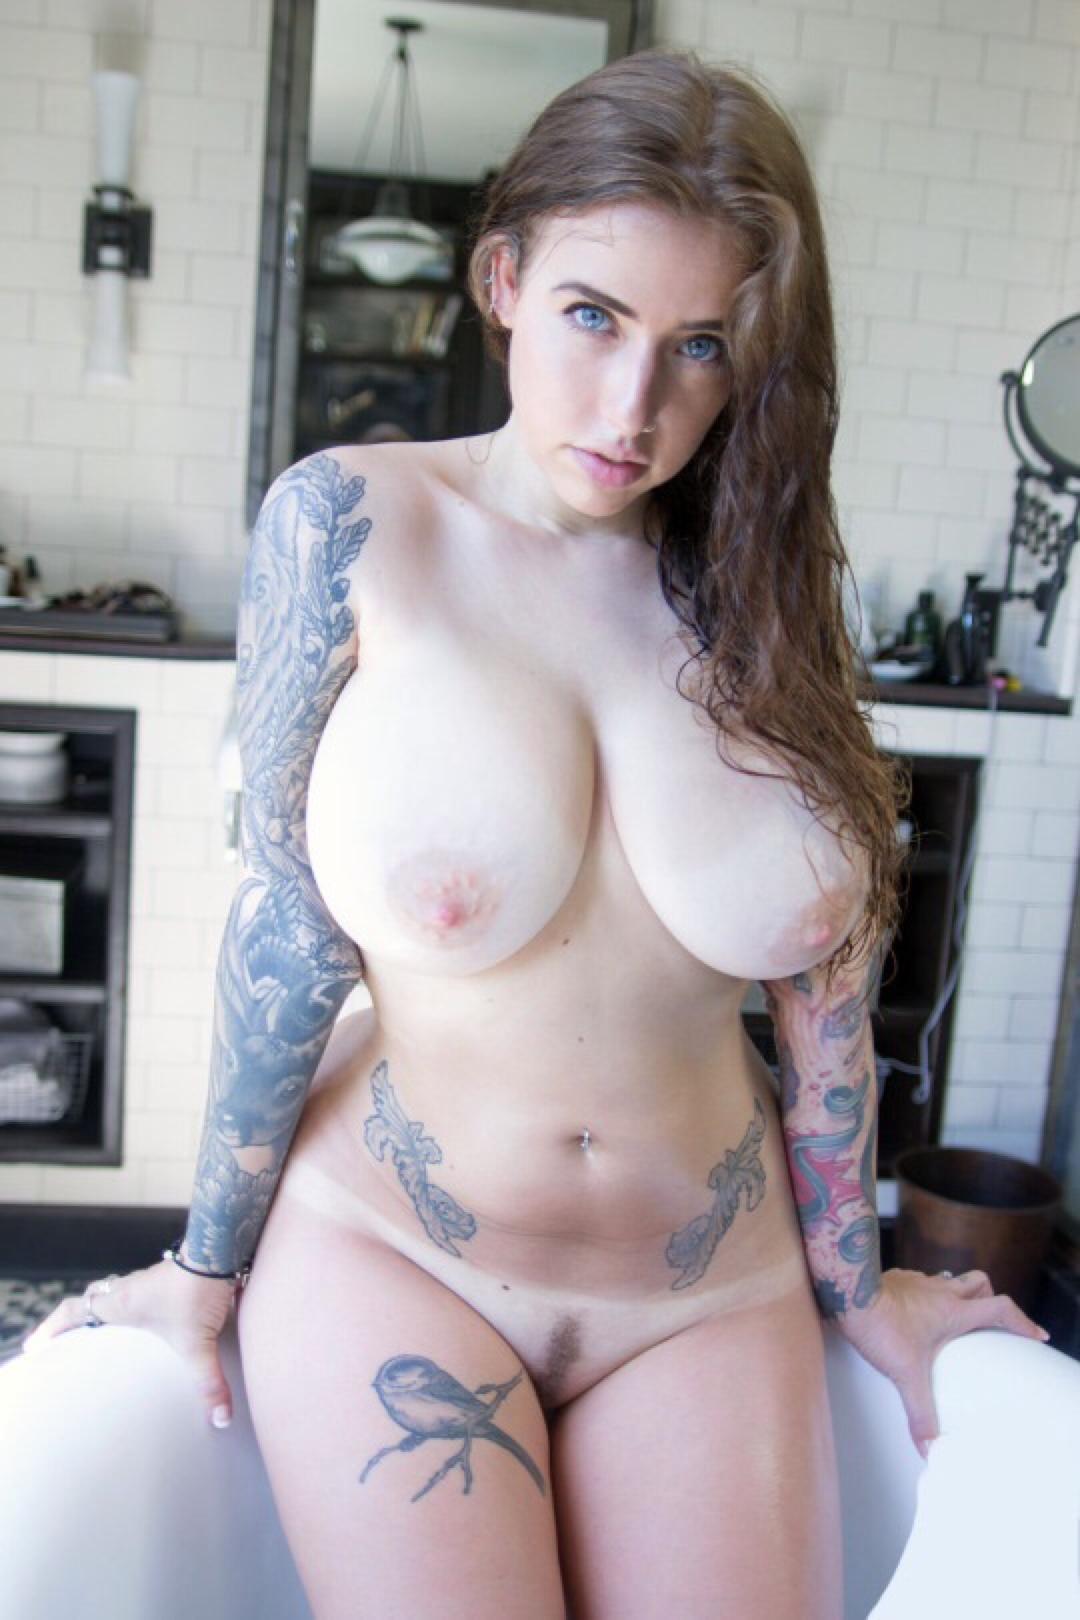 Tolle Nippel